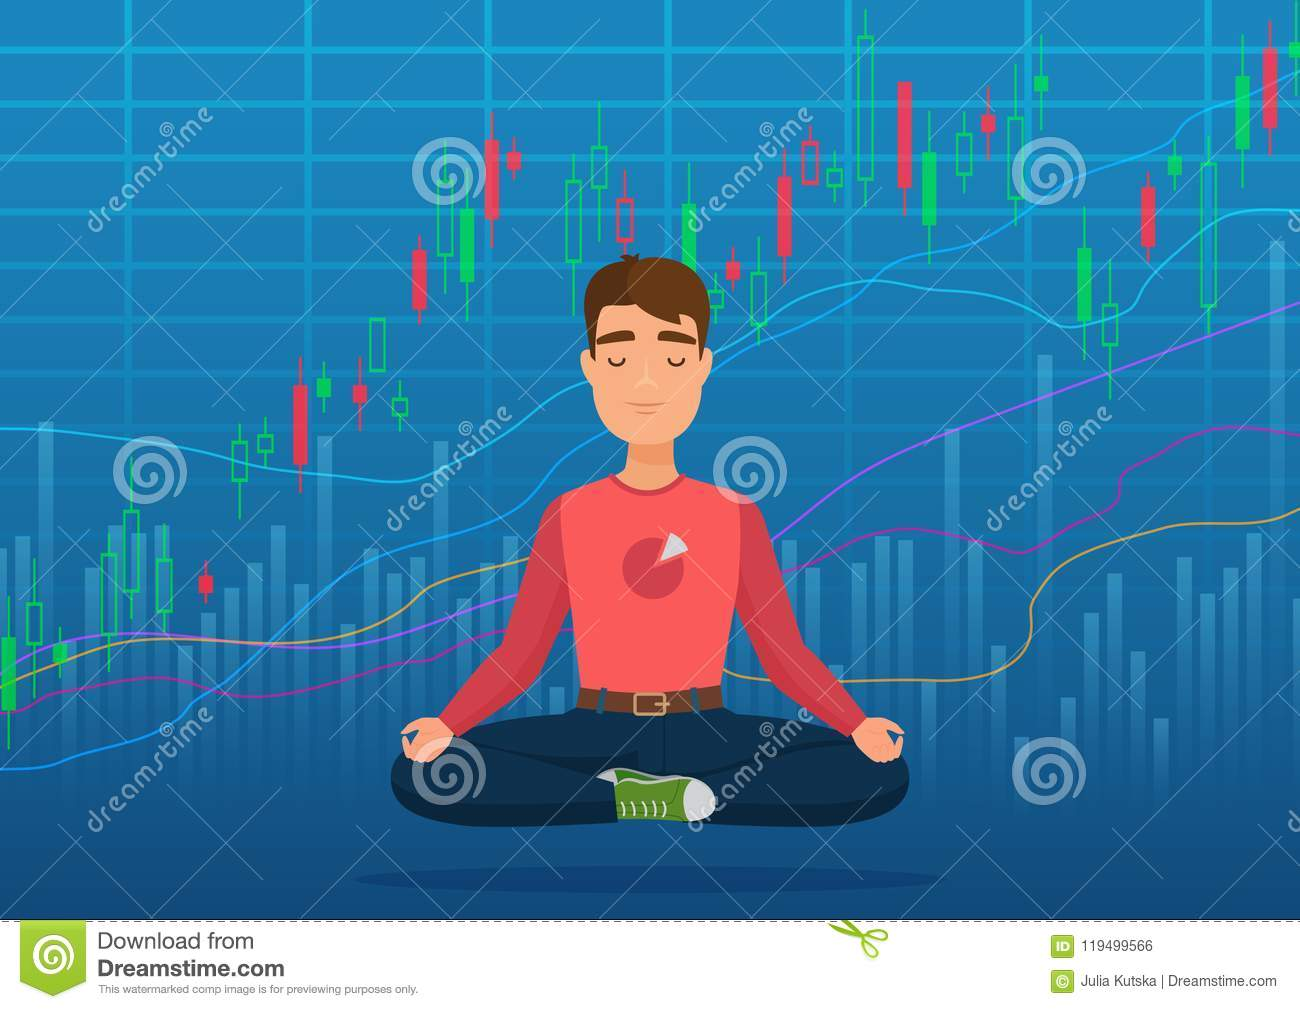 Young happy man trader meditating under crypto or stock market exchange chart concept. Business trader, finance stock